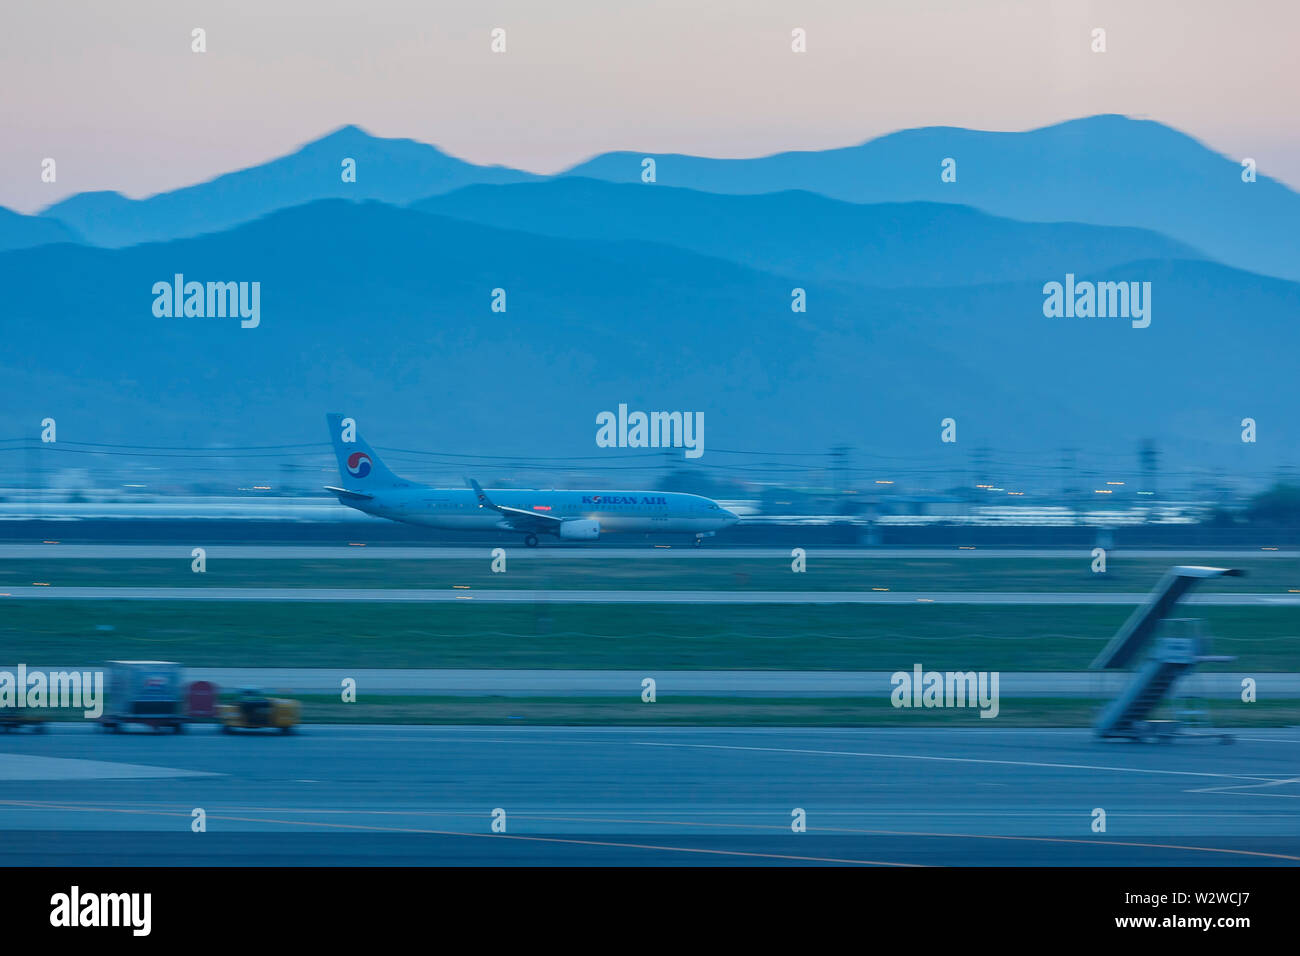 Busan, APR 5: Korean Air's airplane is taking off from an airstrip on APR 5, 2014 at Busan, South Korea - Stock Image